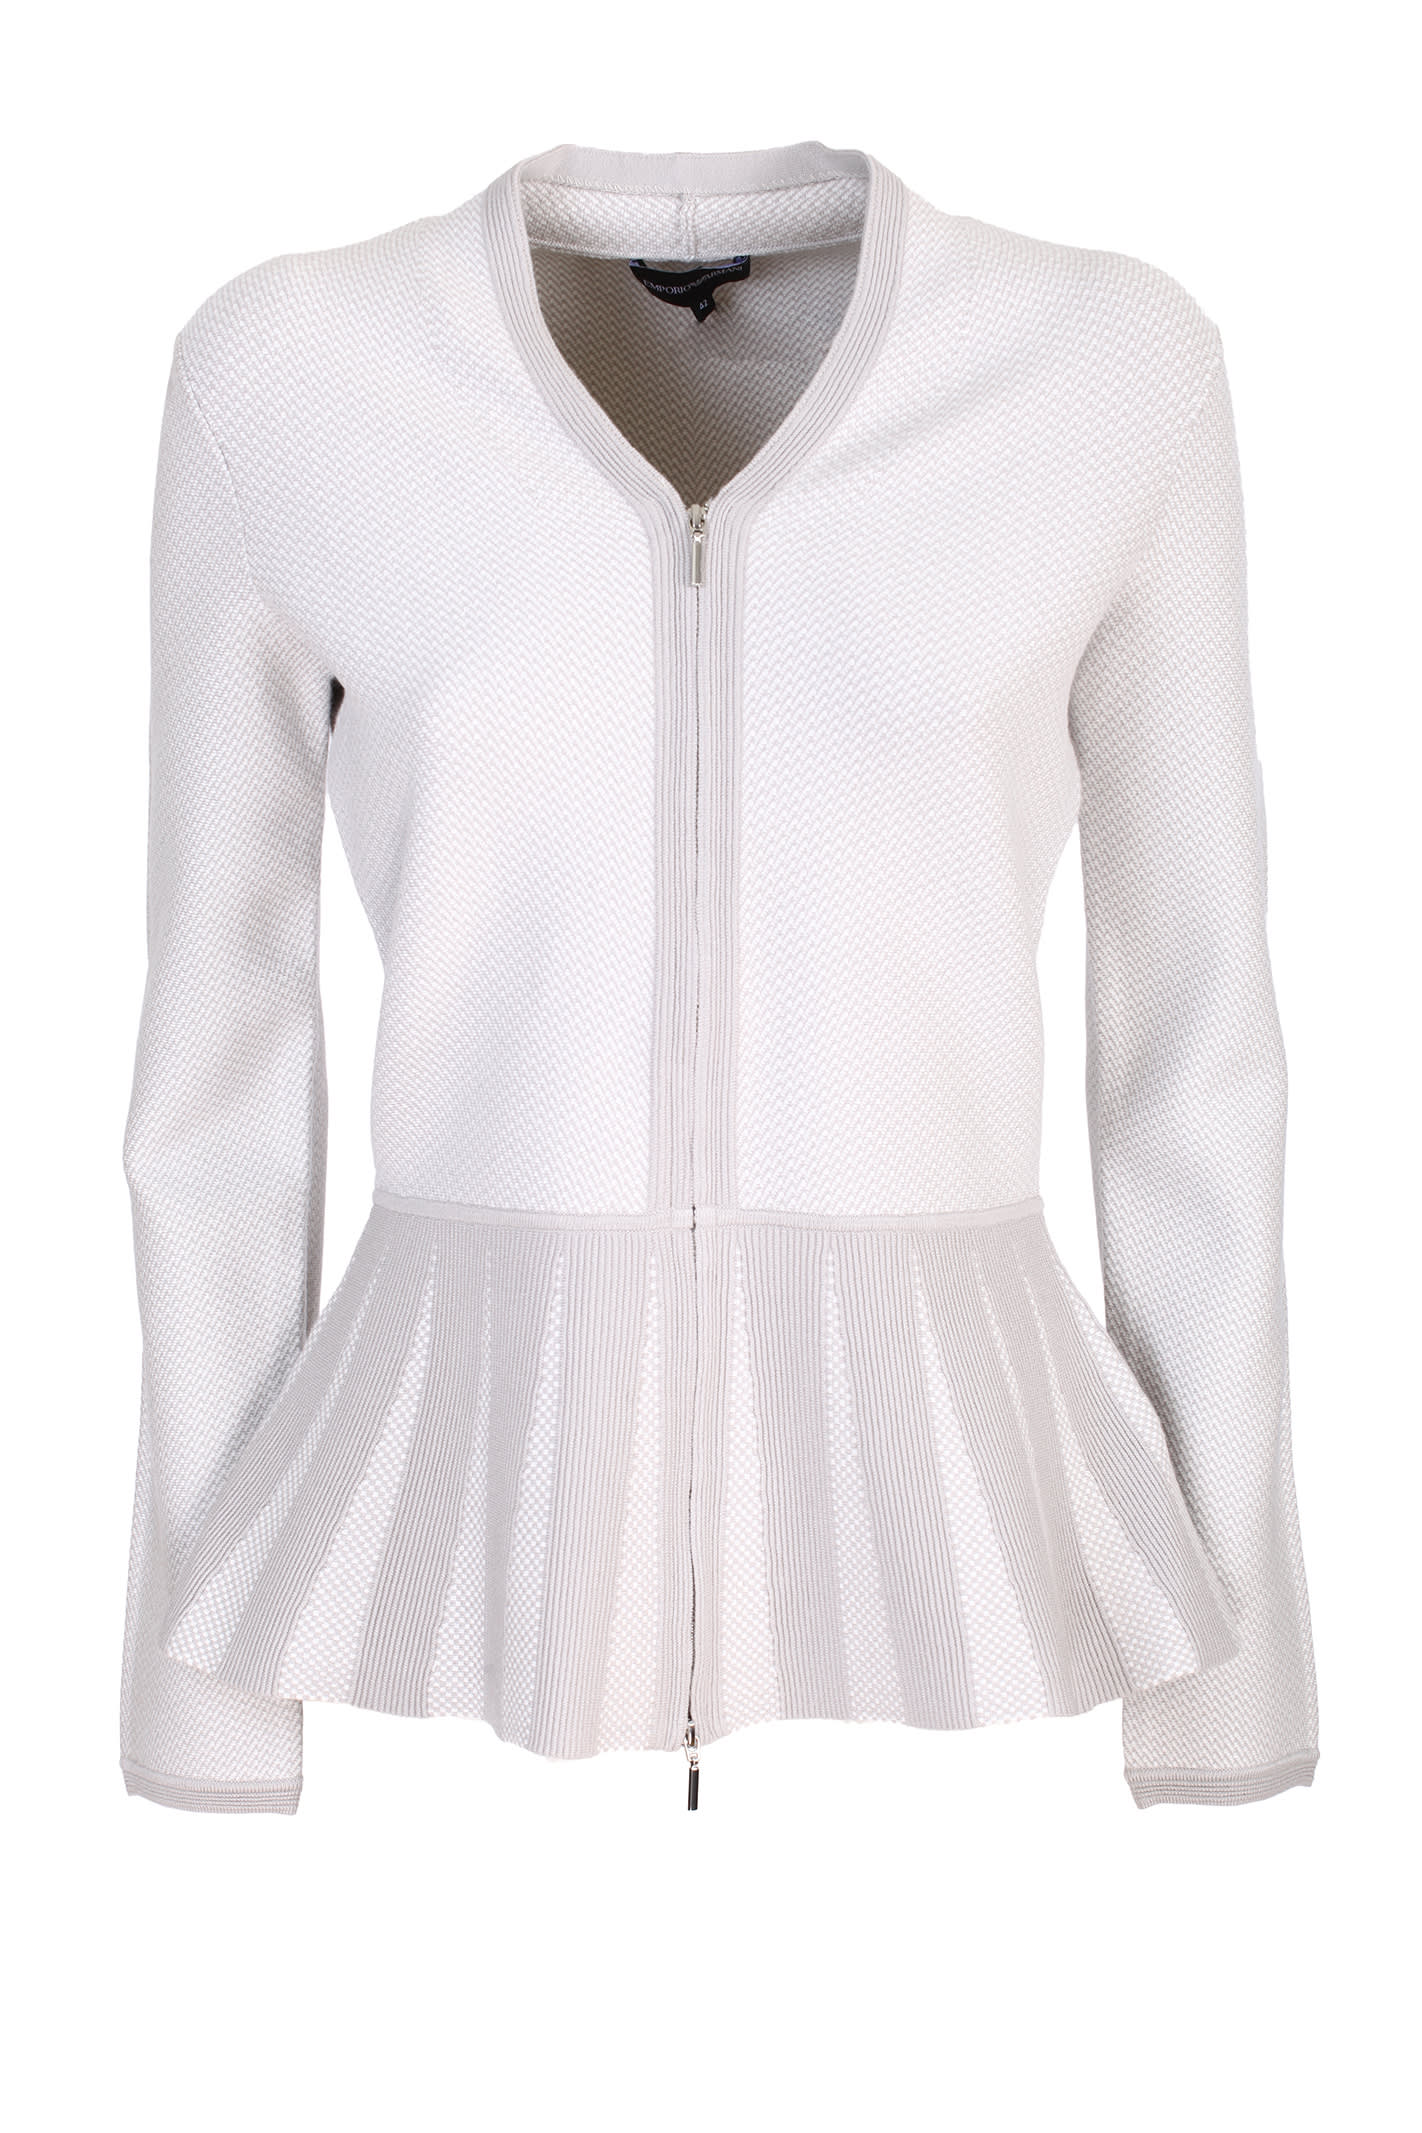 Photo of  Emporio Armani cardigan- shop Emporio Armani jackets online sales